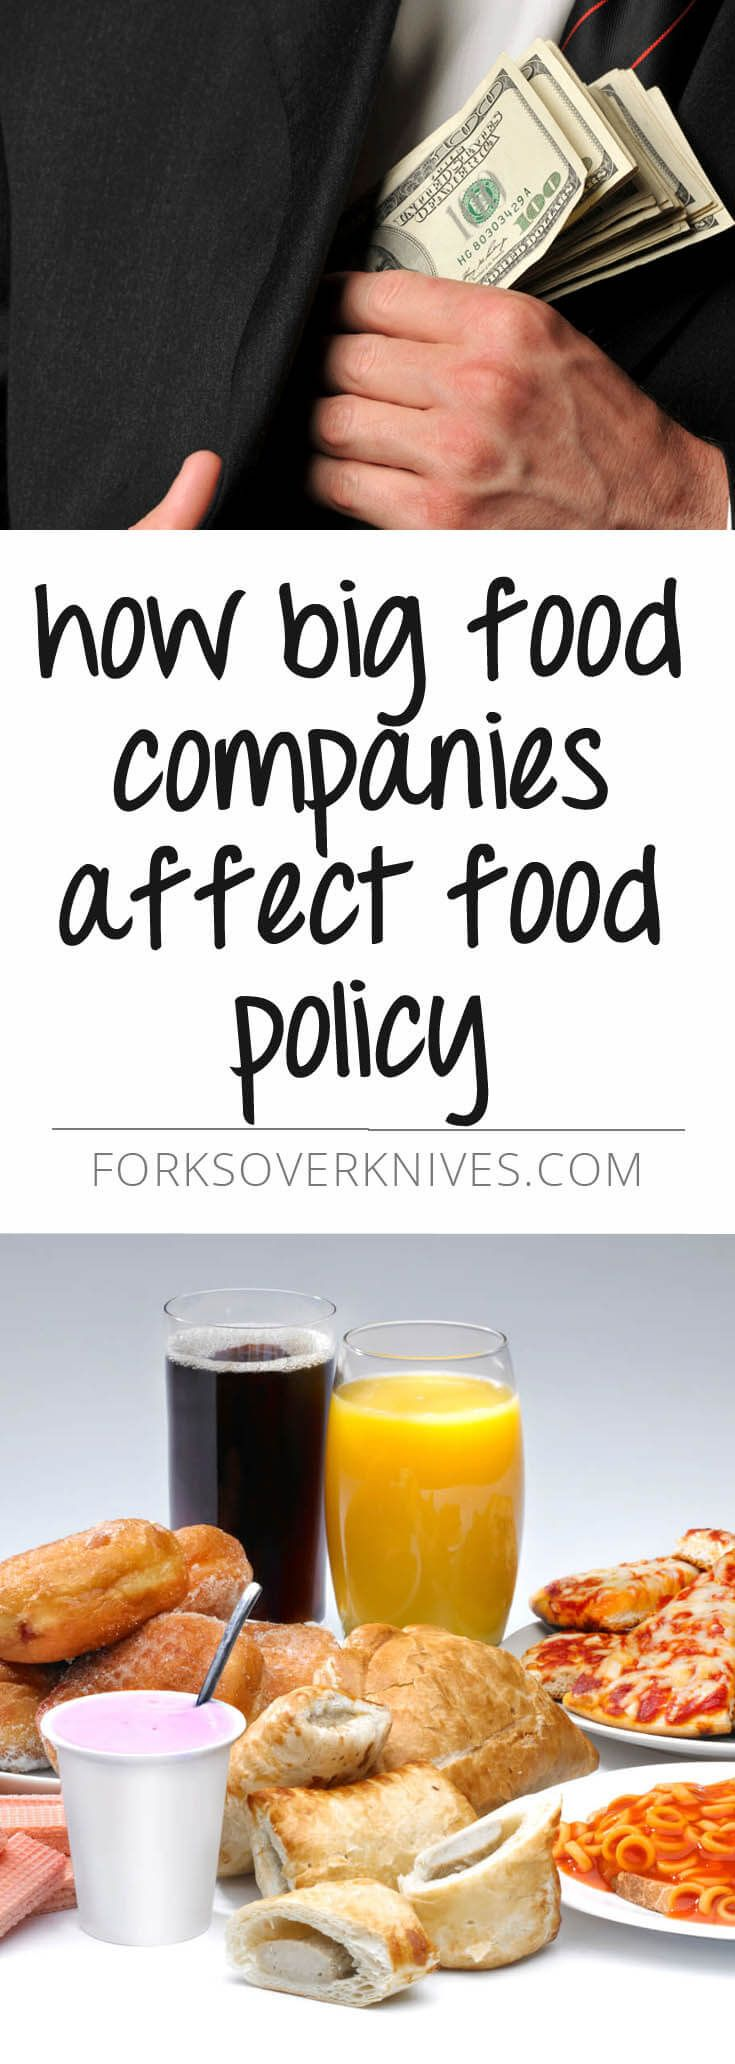 How the food and beverage industries influence the health arena.